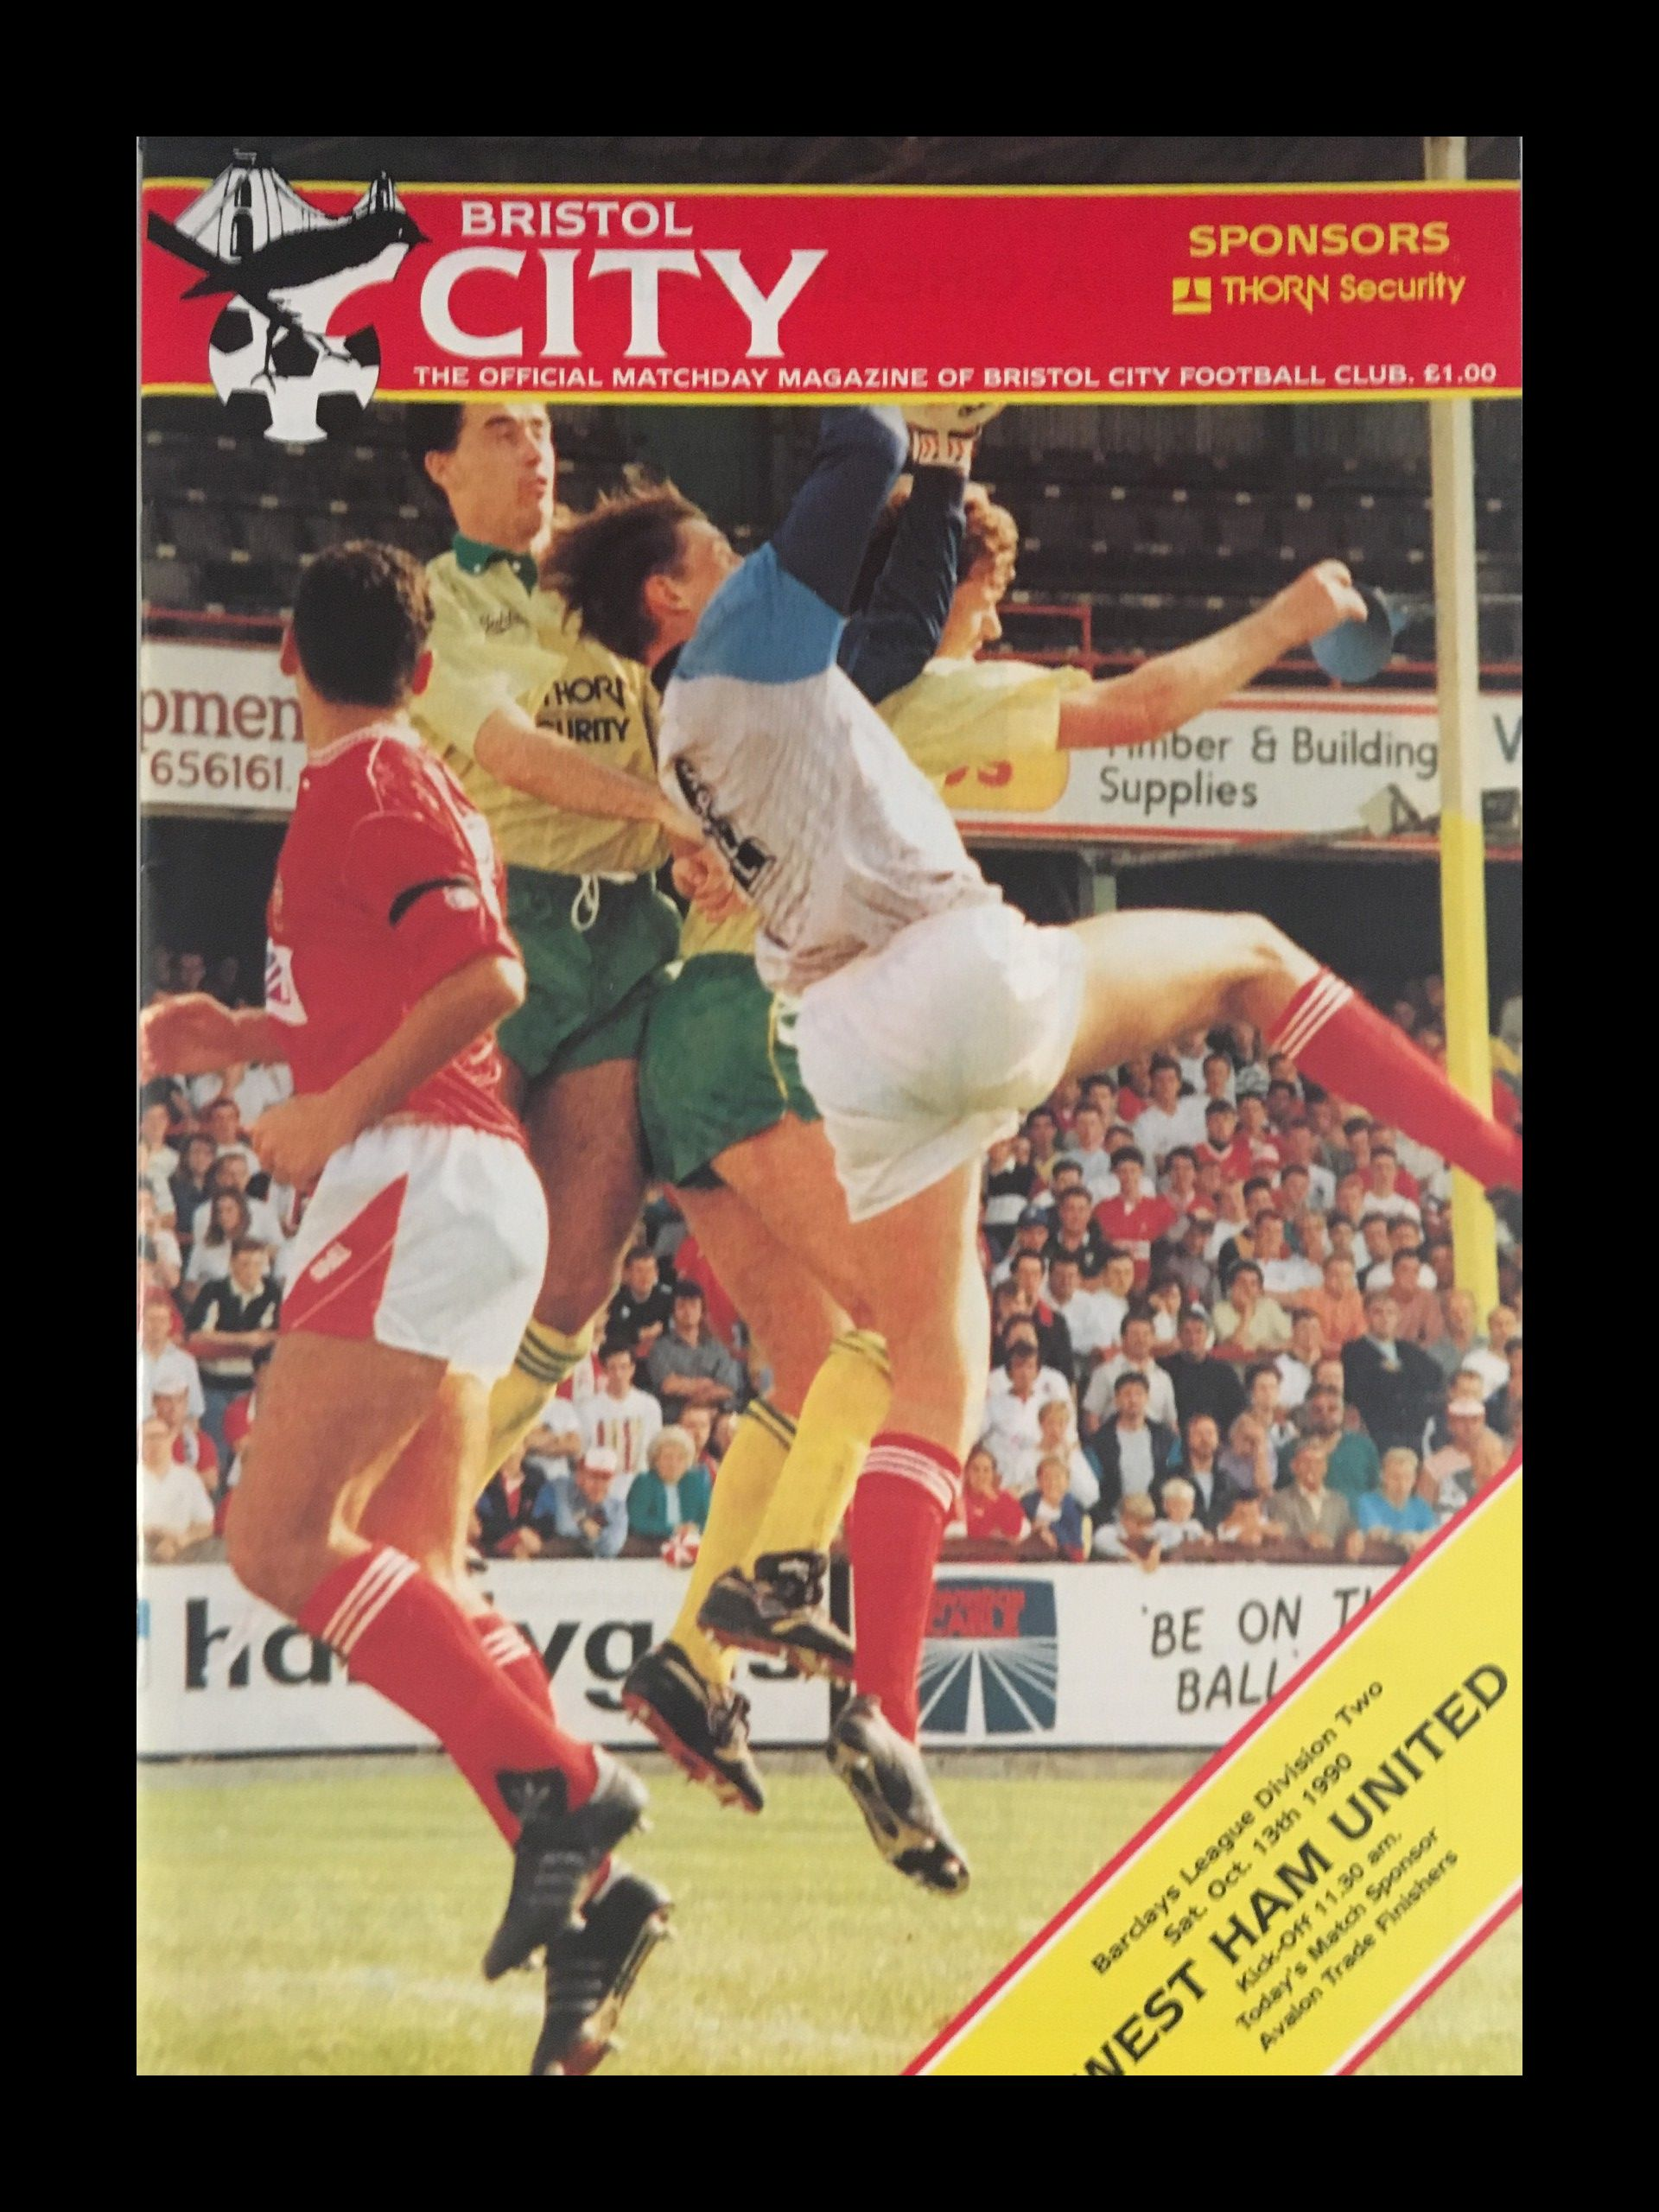 Bristol City v West Ham United 13-10-1990 Programme